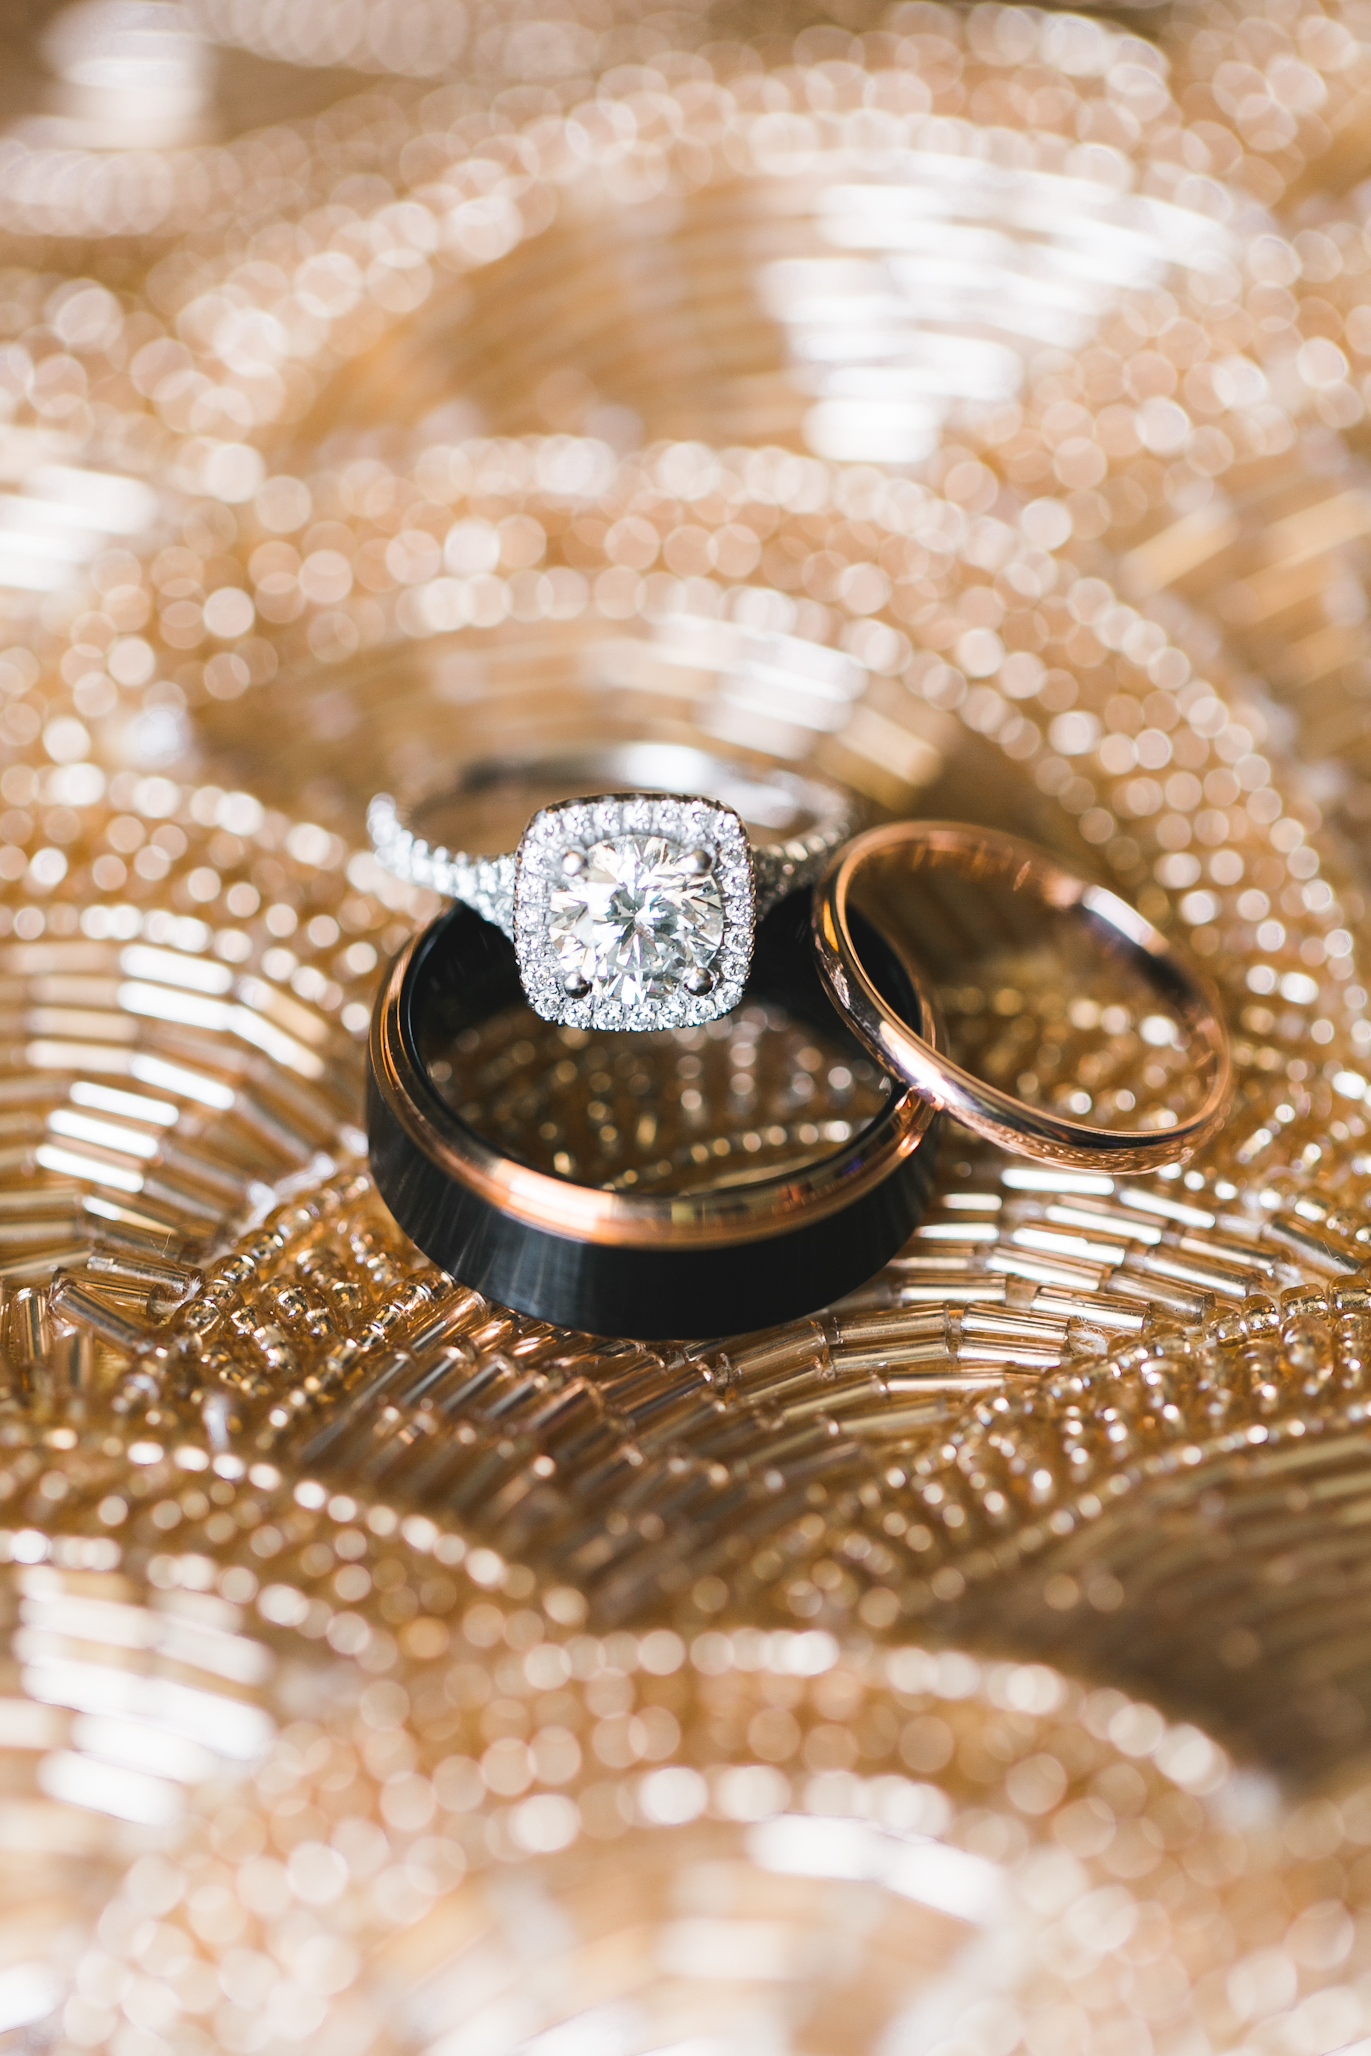 Loved their ring choices. A whole lotta diamonds and a touch of rose gold.